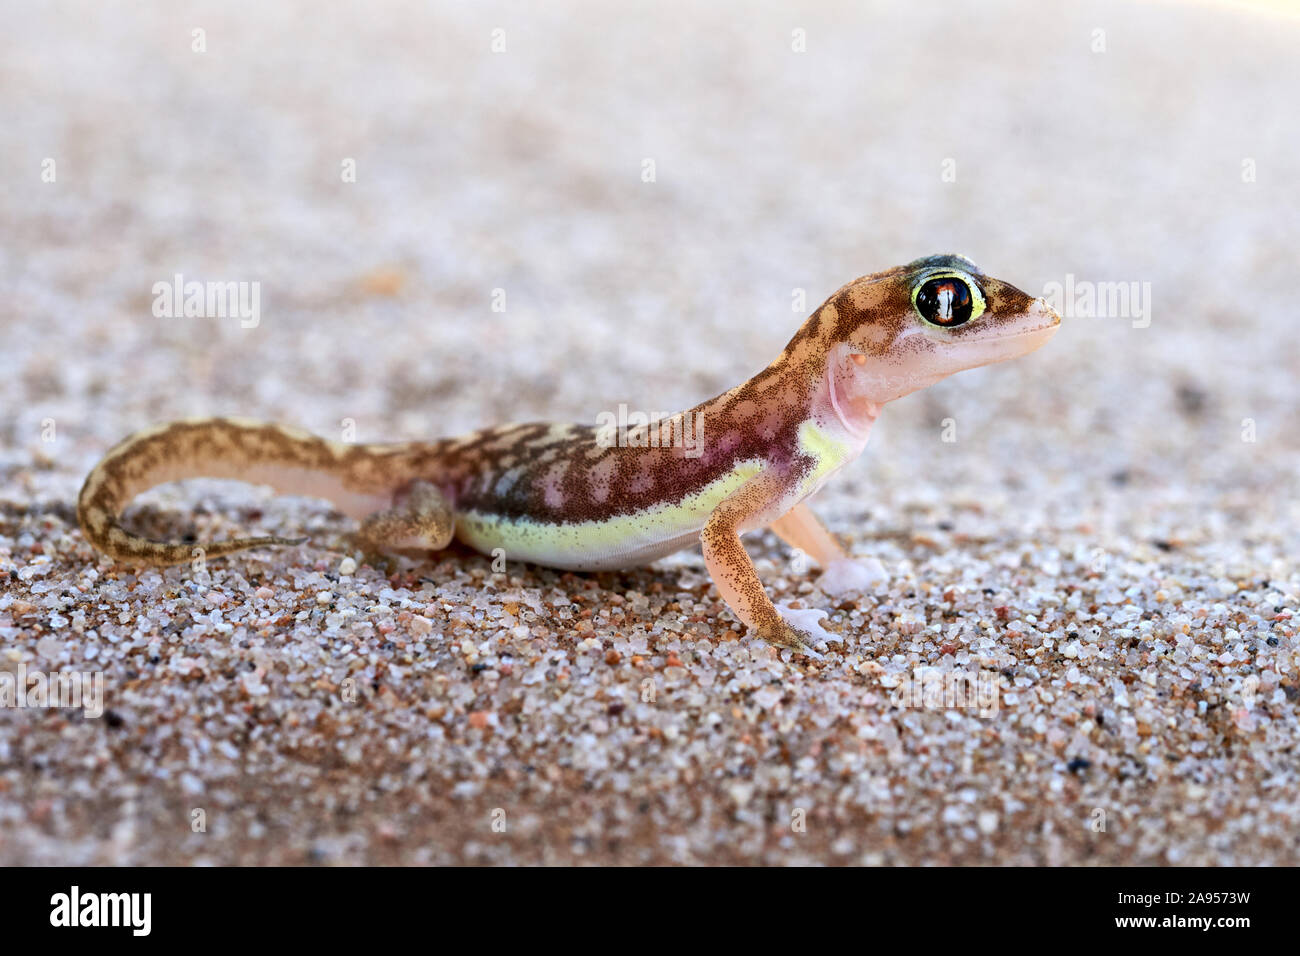 The Namib sand gecko or web-footed gecko (Pachydactylus rangei) photographed in the Dorob National Park, Namibia Stock Photo